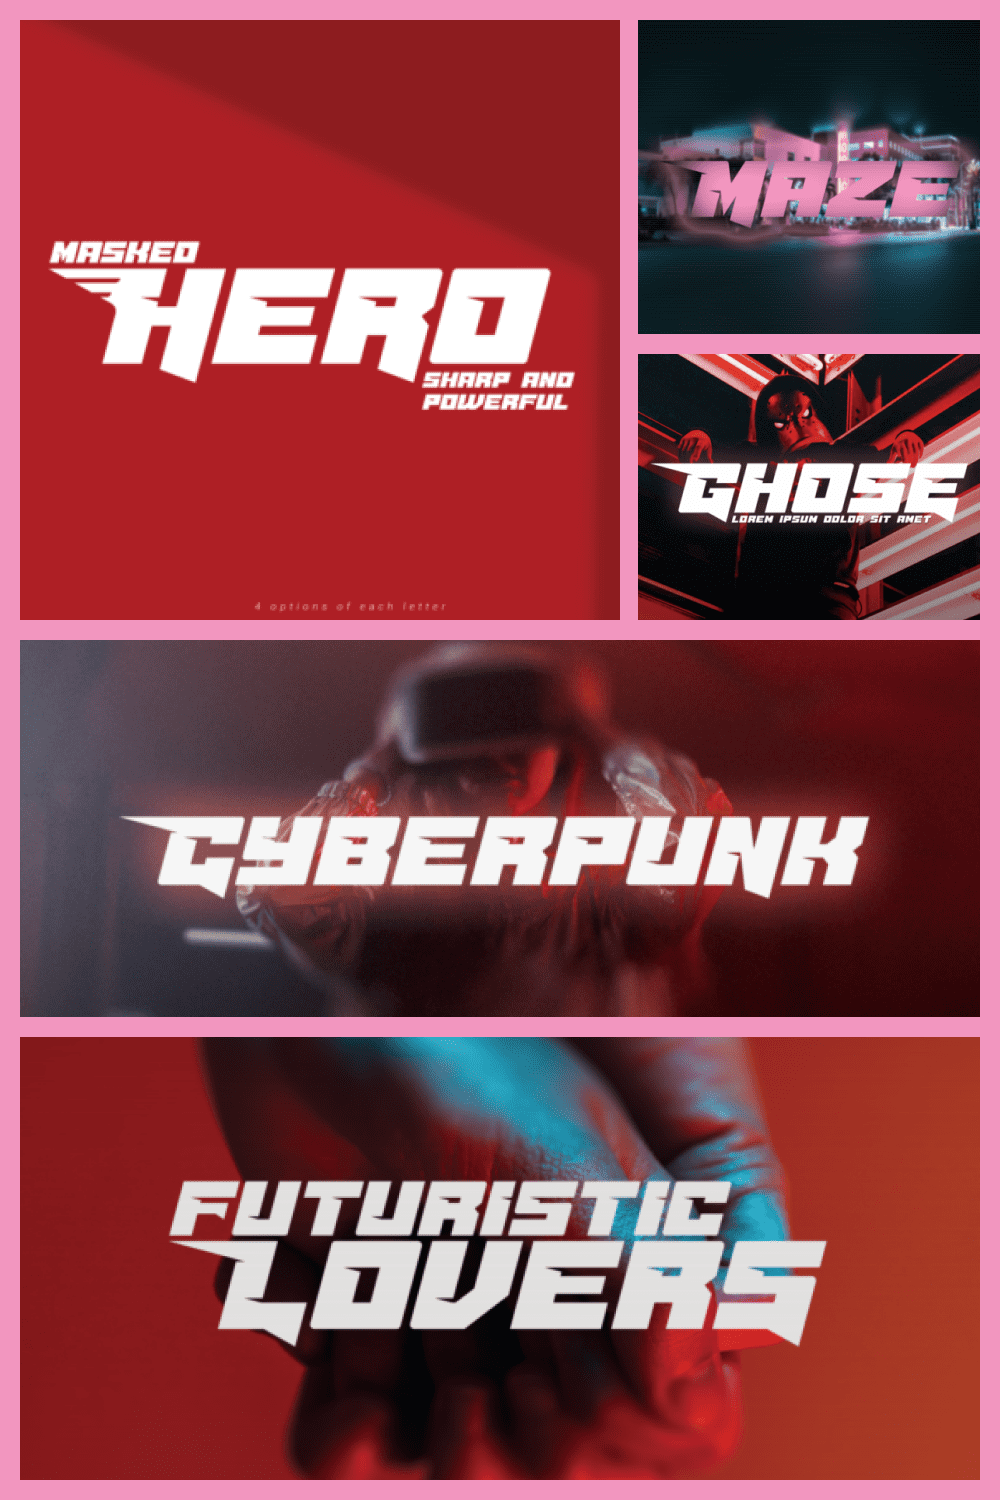 This is a sharp and bold display font. Masterfully designed to become a true favorite, this font has the potential to bring each of your creative ideas to the highest level.